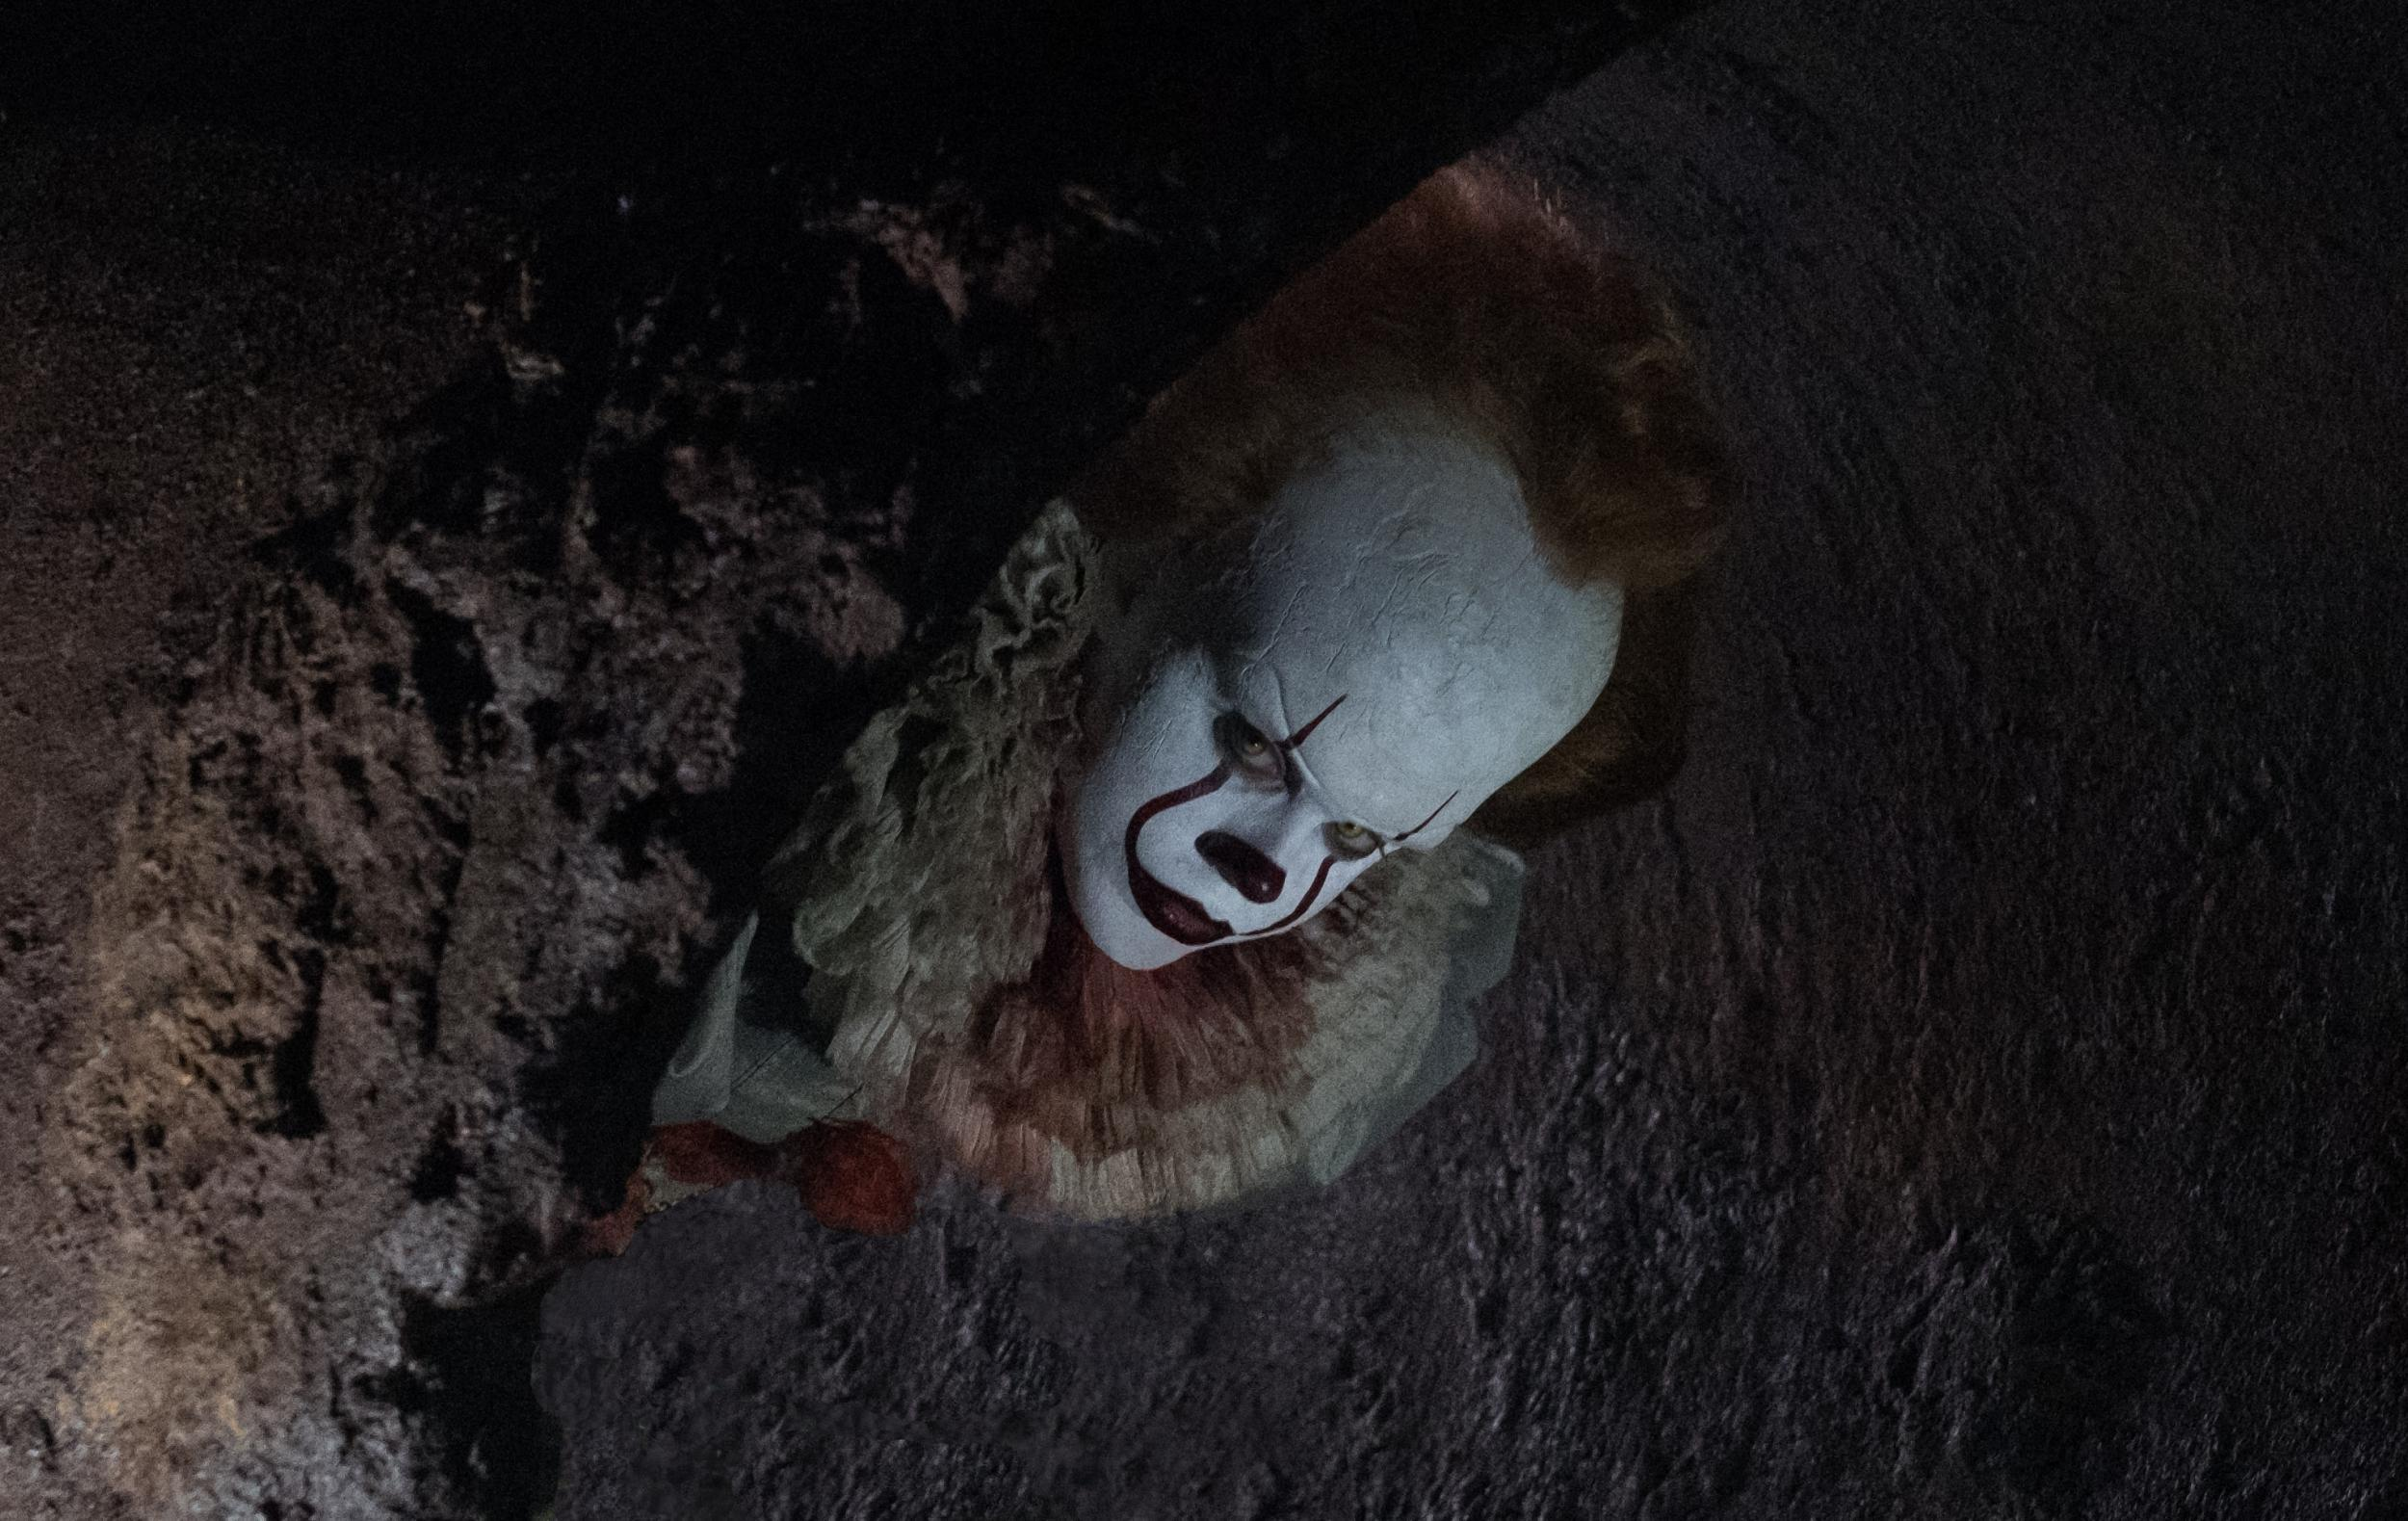 New Image Of Pennywise From Stephen King's It Is Pure Nightmare Fuel